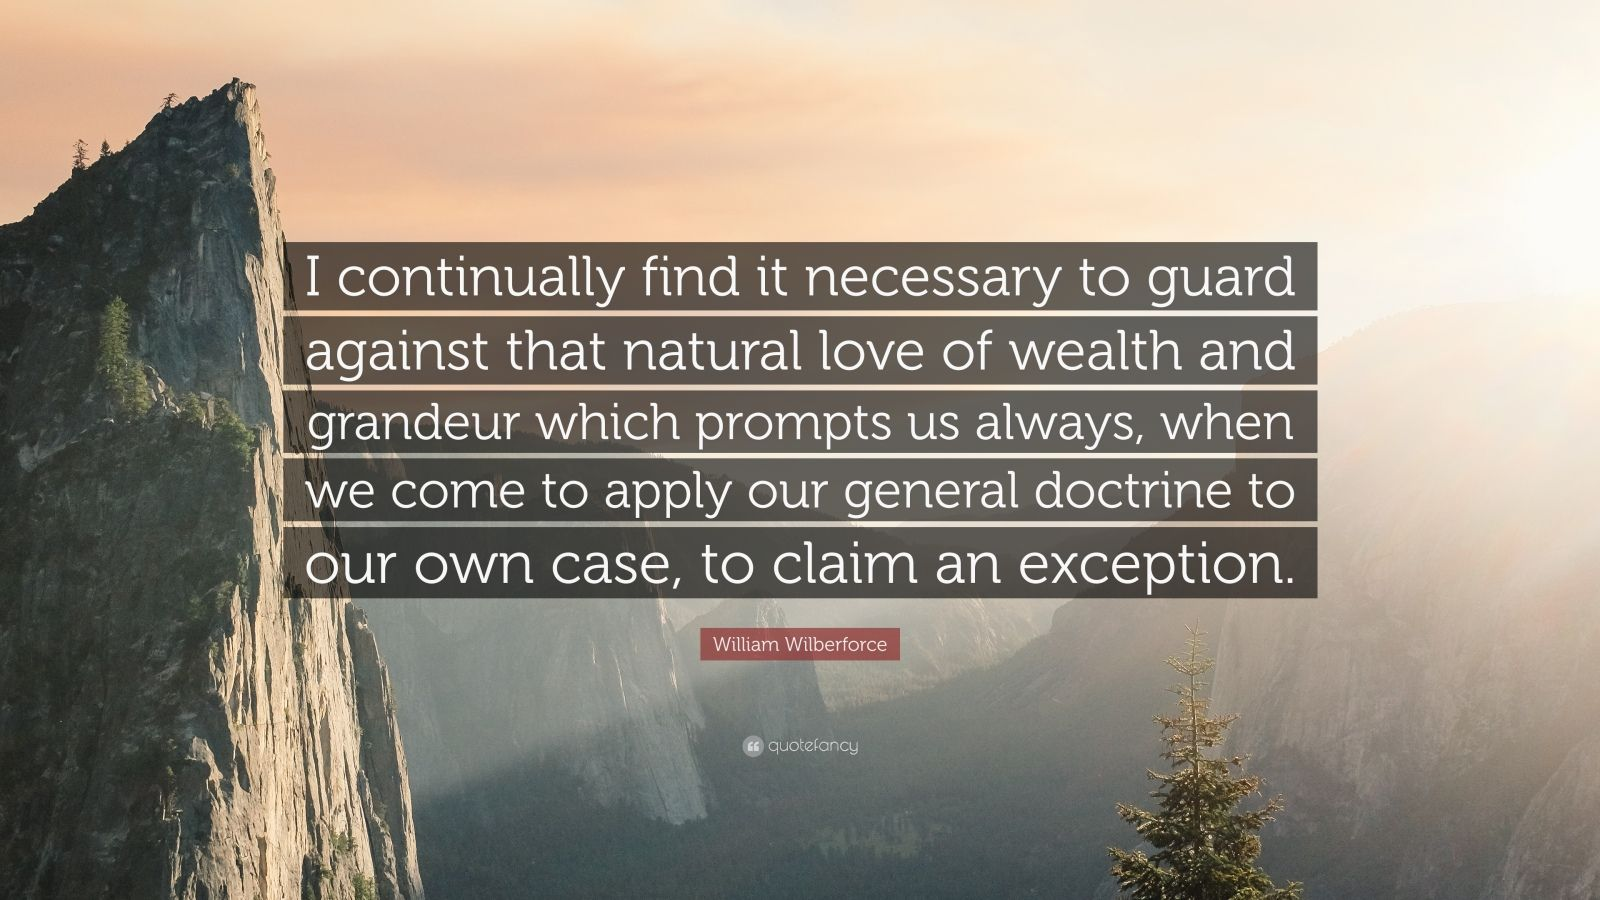 """William Wilberforce Quote: """"I continually find it necessary to guard against that natural love of wealth and grandeur which prompts us always, when we come to apply our general doctrine to our own case, to claim an exception."""""""